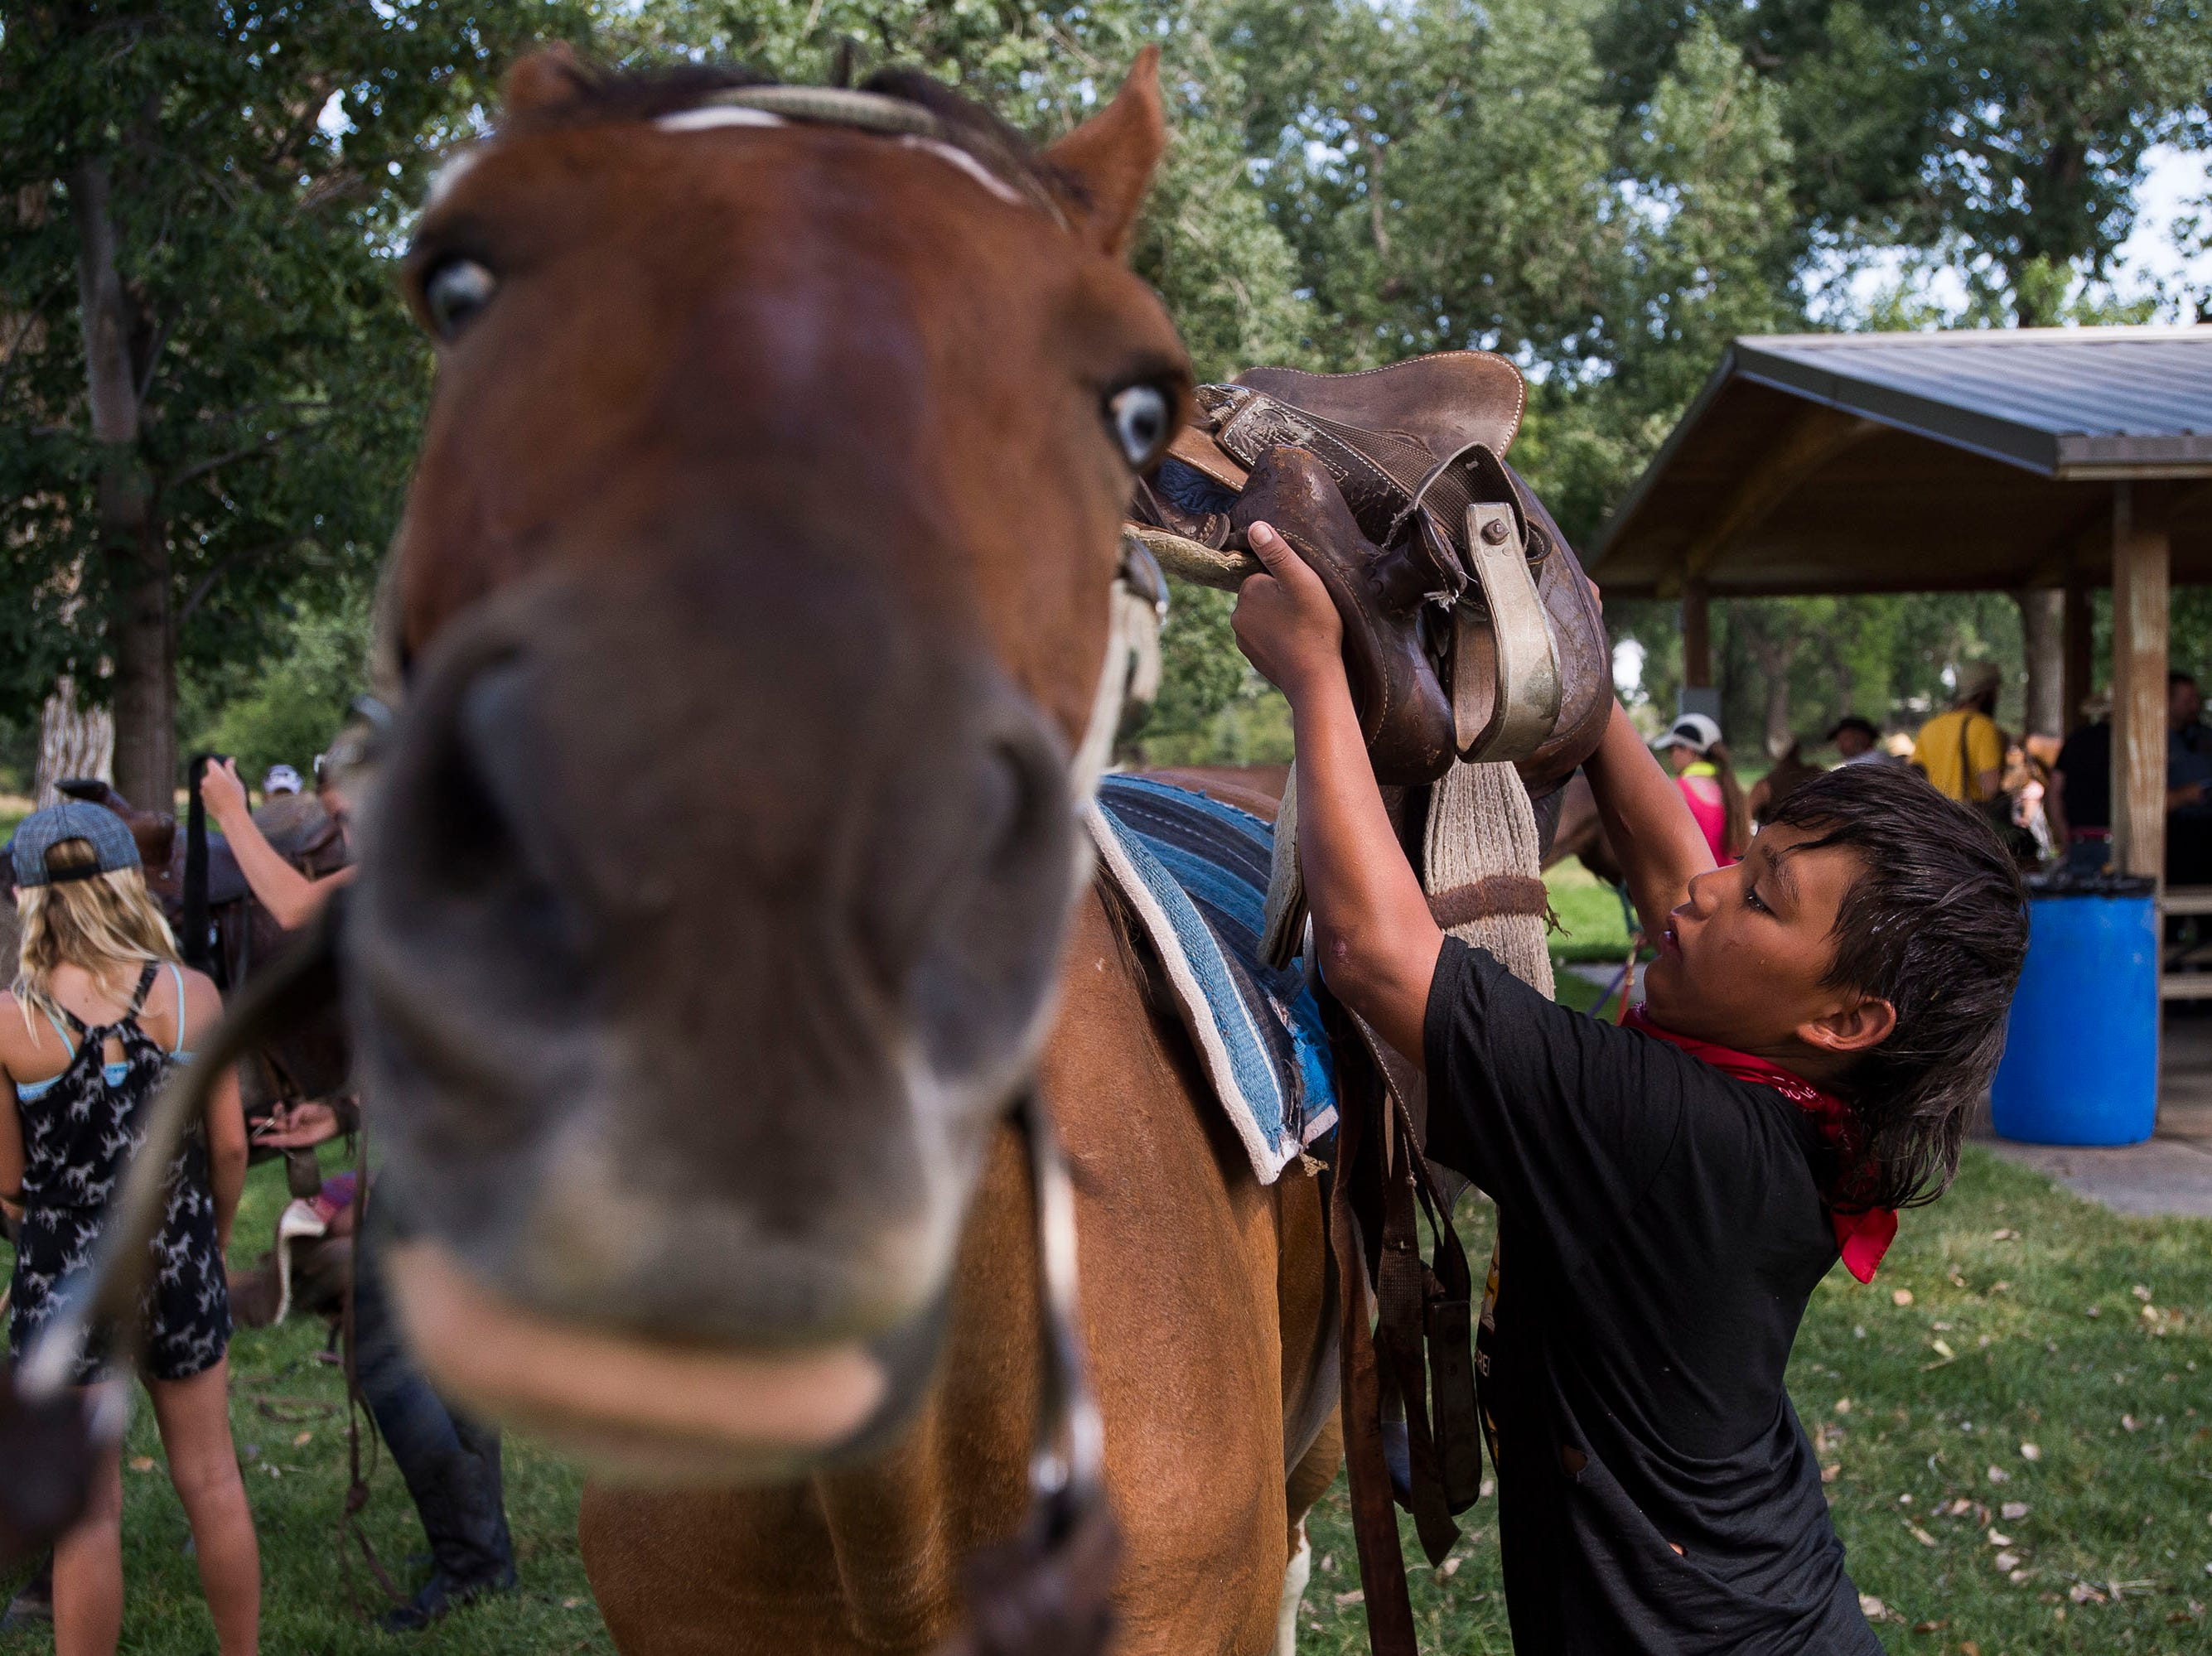 Thomas Belt, from the Pine Ridge Indian Reservation, saddles up his horse, Bandoo, on Thursday, July 19, 2018, at Namaqua Park in Loveland, Colo, before heading North to Fort Collins.